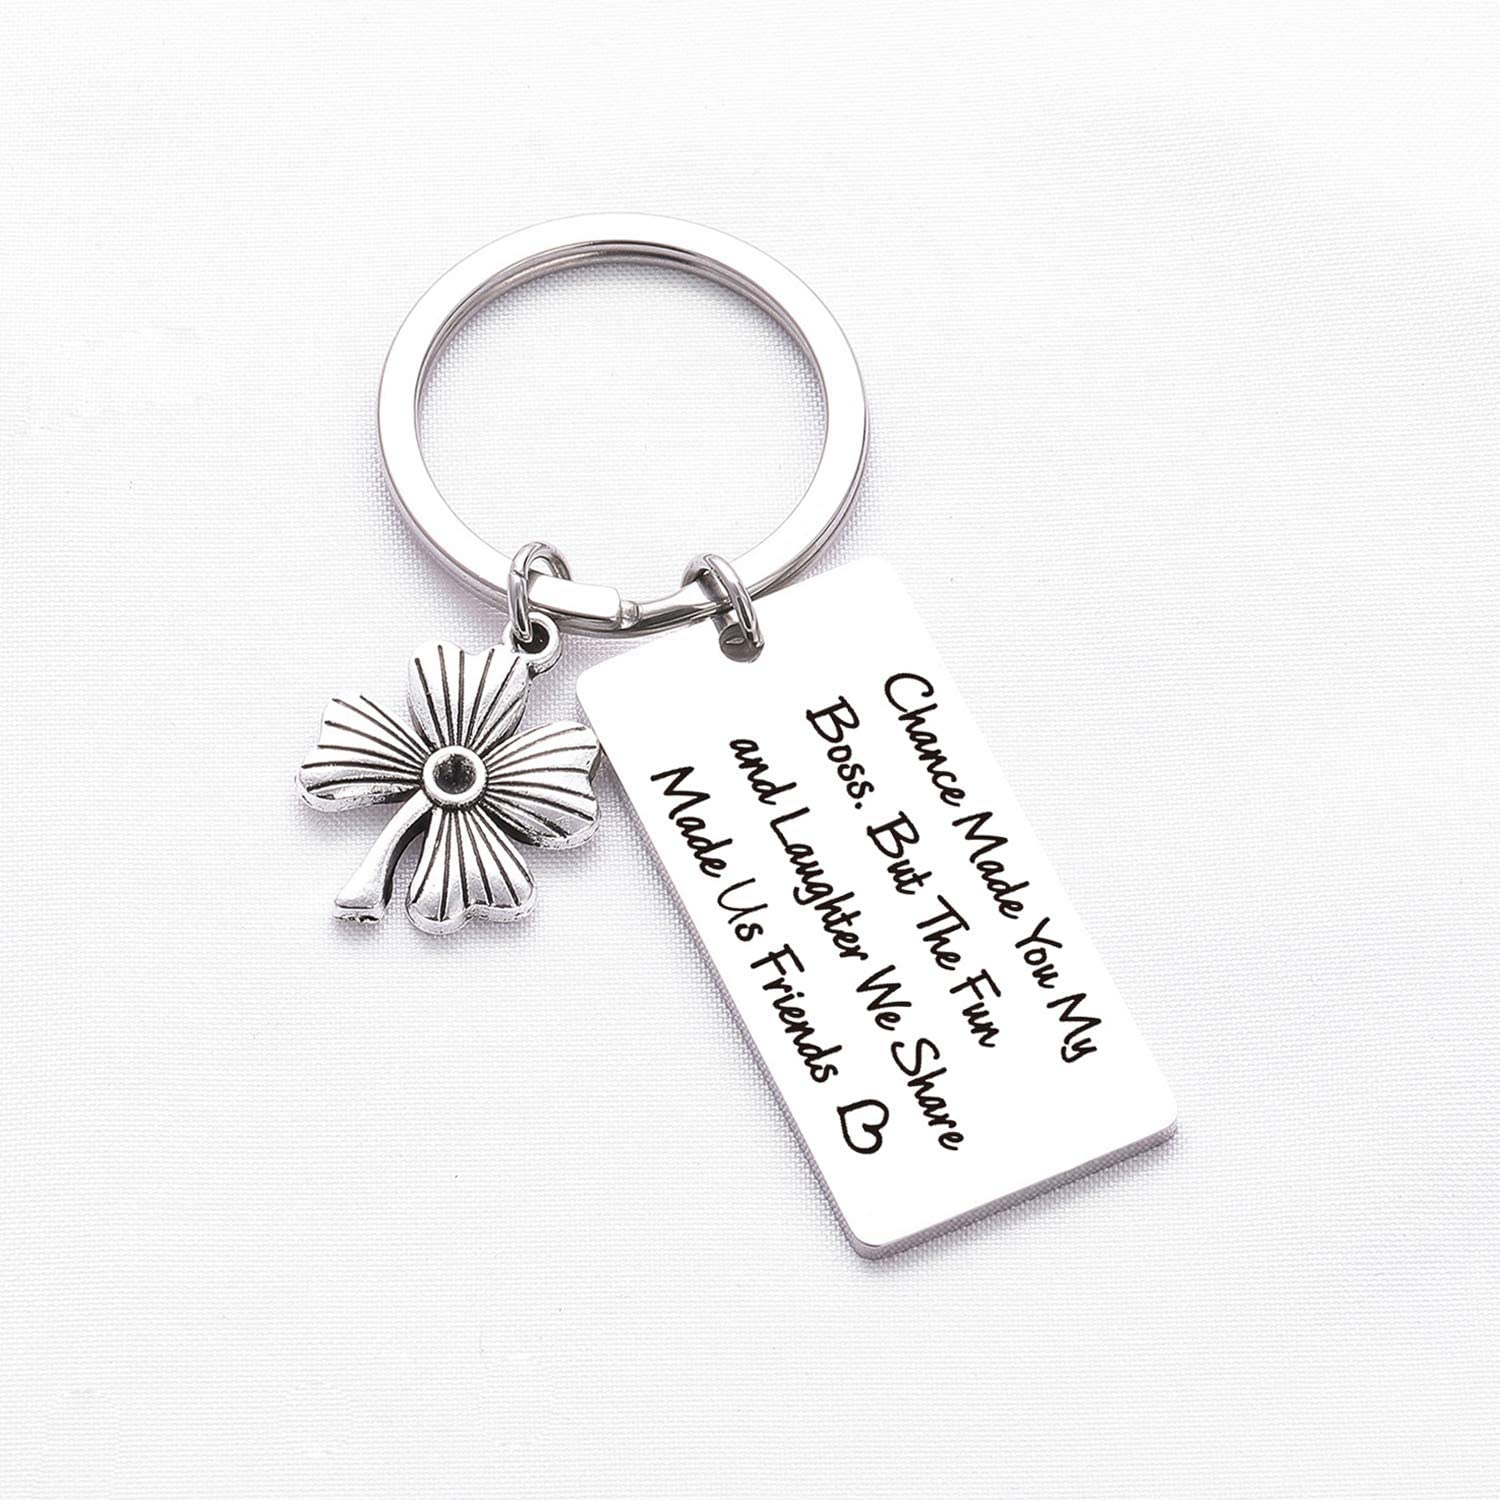 Boss Gift Mentor Keychain Coworker Moving Away Gift Leaving Coworker Gift Coworker Retiring Jewelry New Job Gift Boss Retirement Gift Coach Gift Boss Boss Keychain